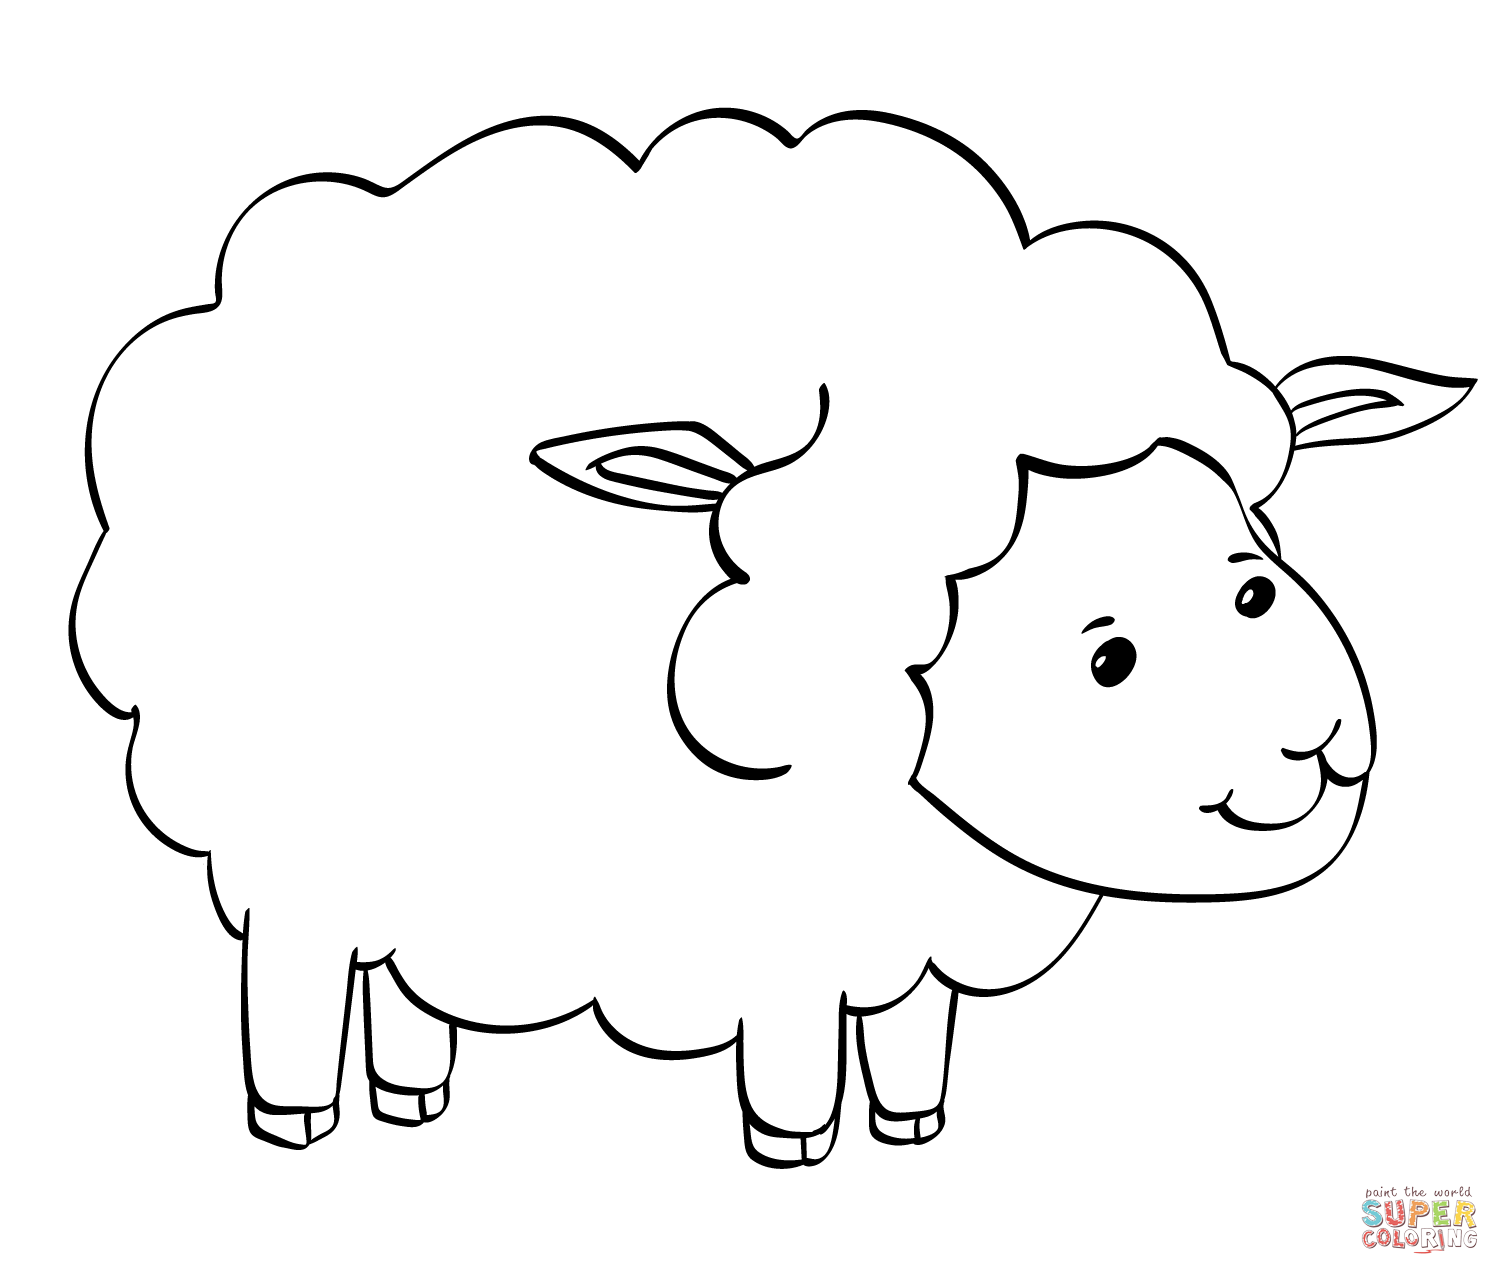 Cute Sheep Drawing Tumblr Cute Sheep Coloring Page Free Printable Coloring Pages